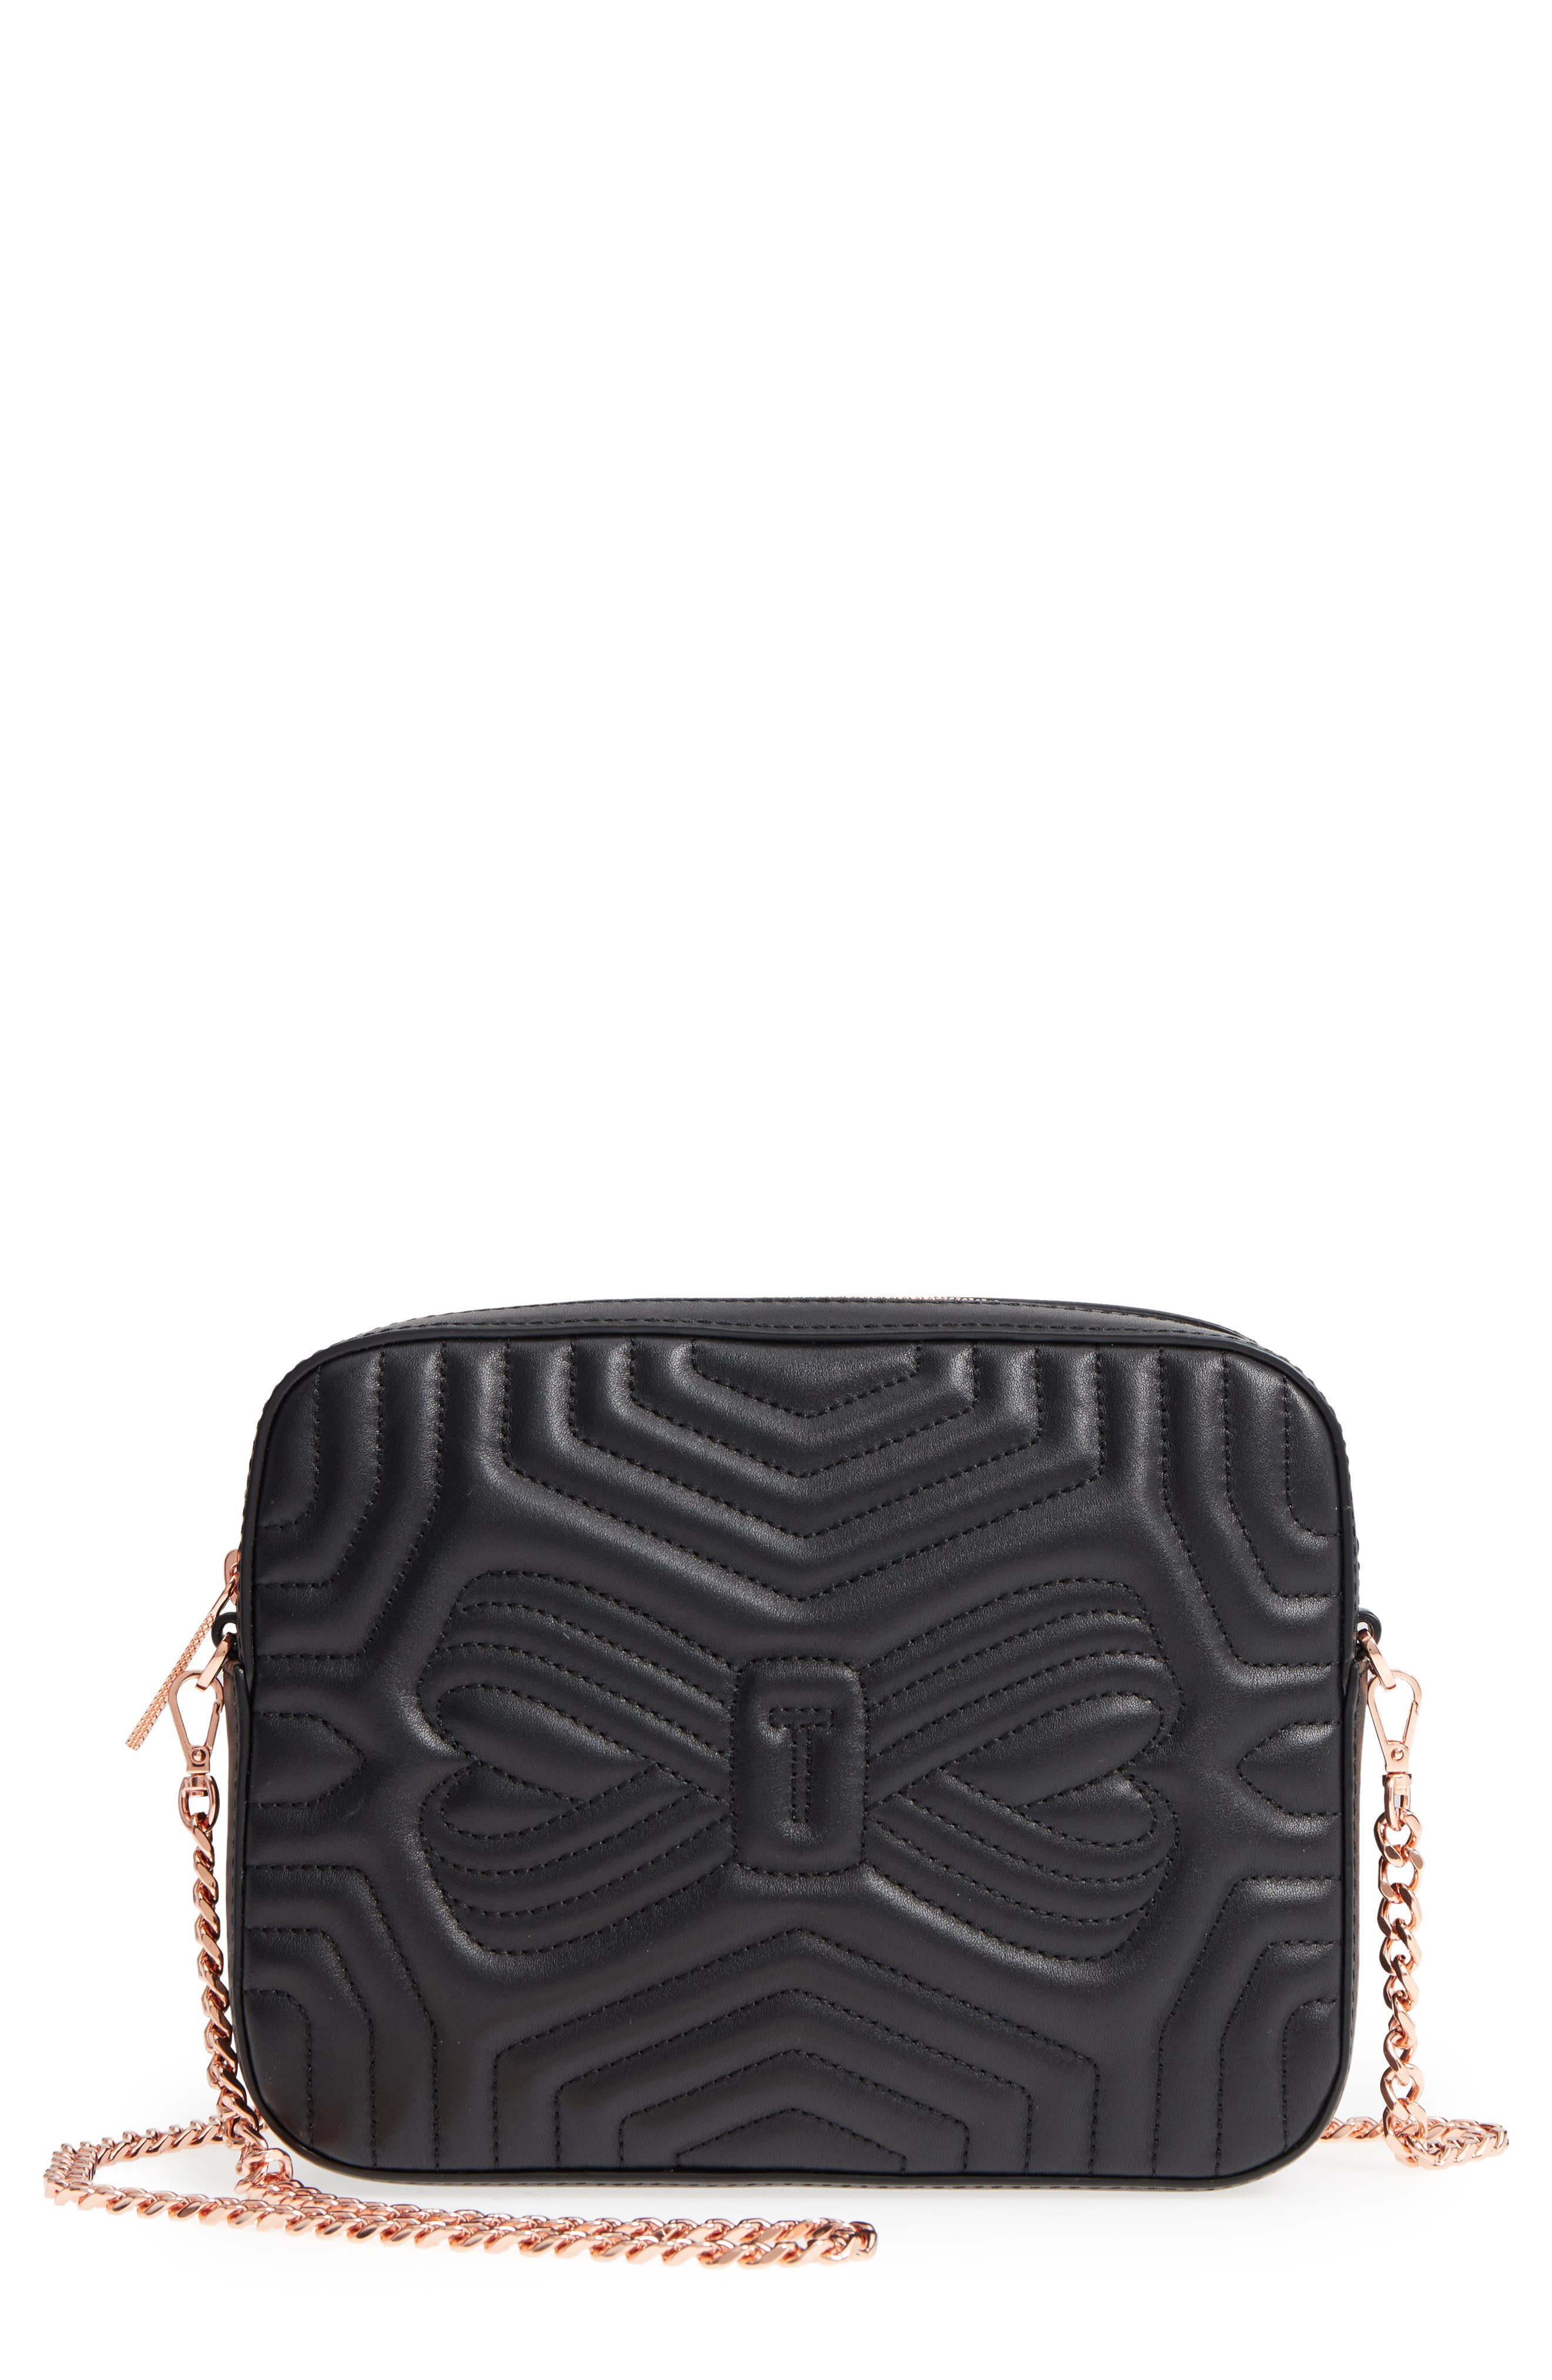 Quilted Leather Camera Bag,                             Main thumbnail 1, color,                             Black